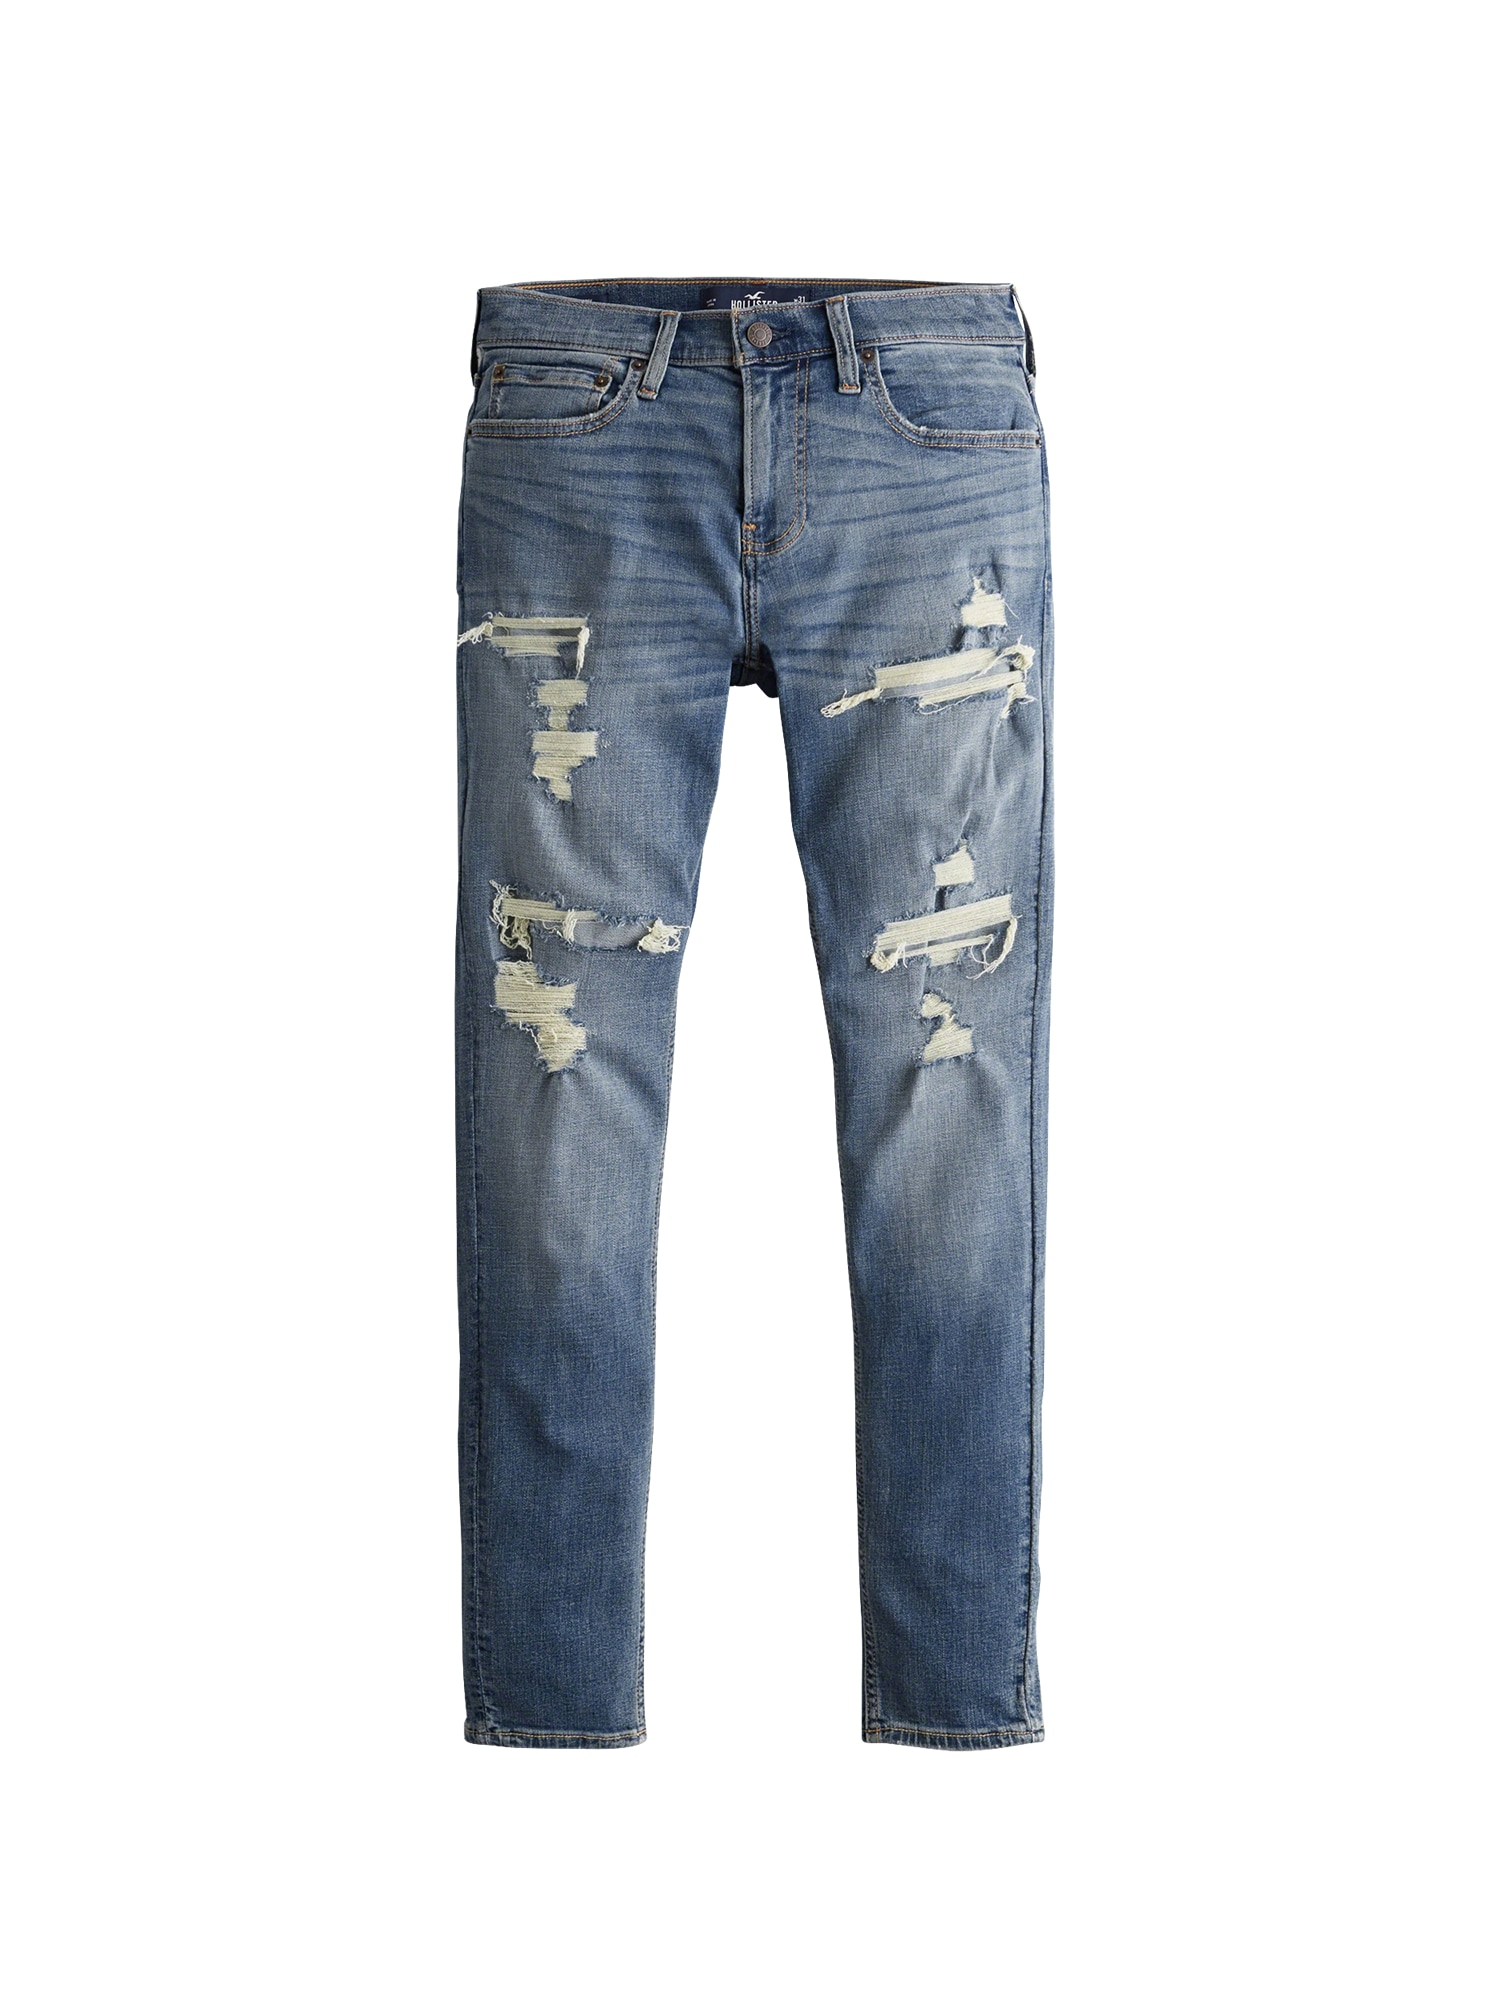 Džíny MEDIUM SELF PATCH SUPER SKINNY 1CC  modrá džínovina HOLLISTER